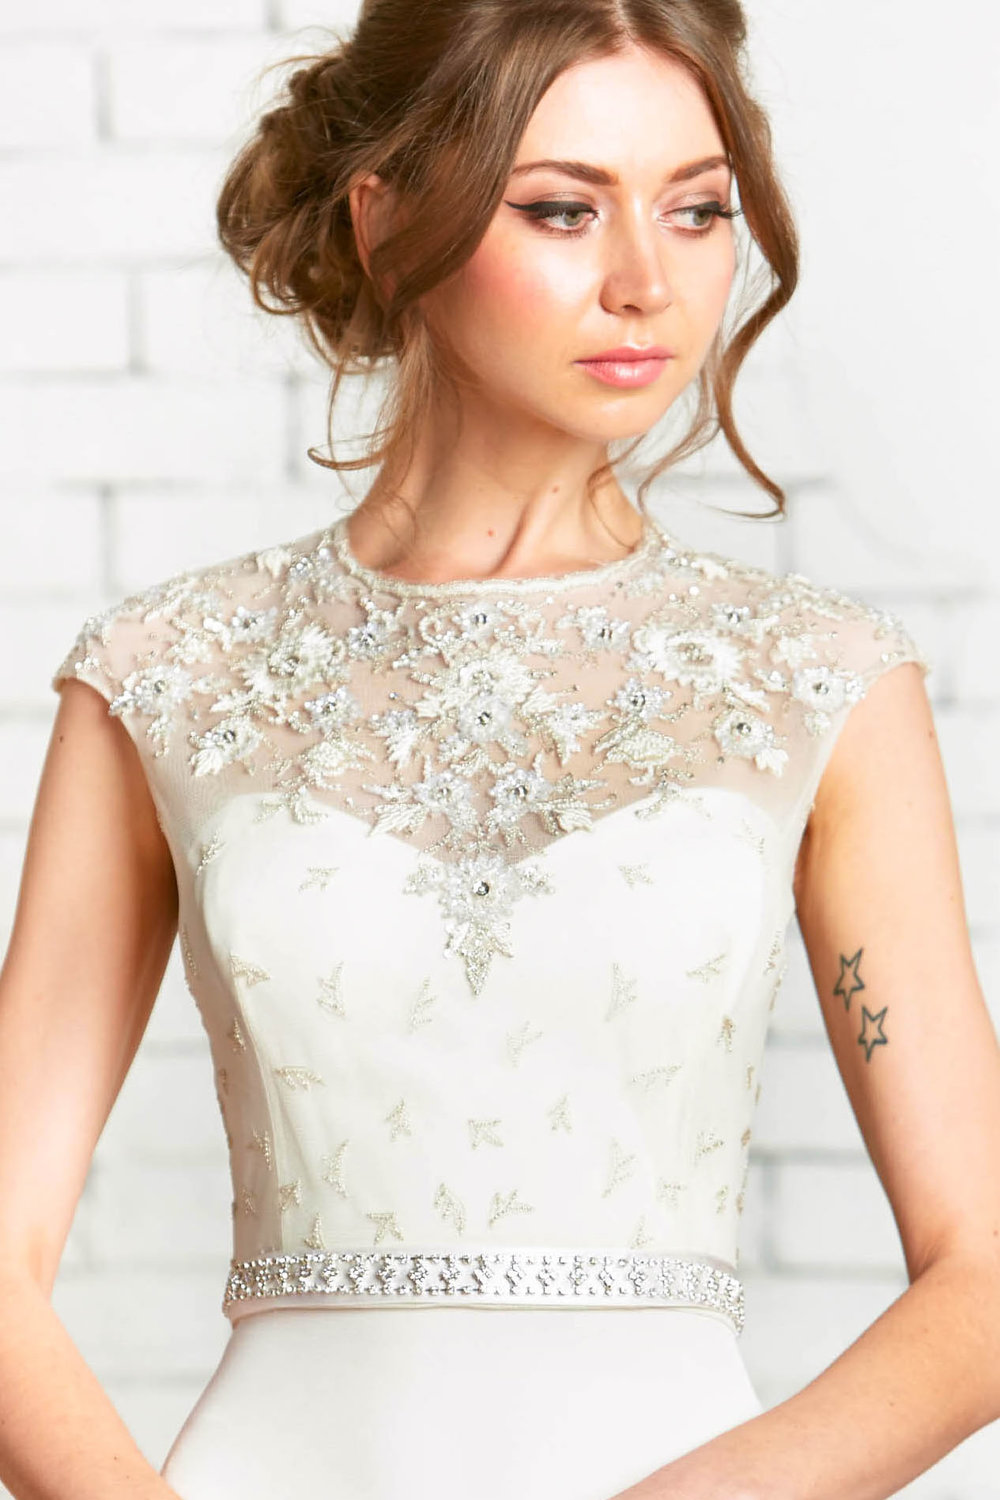 EstelleTop-Beaded_Statement_Wedding_Look_Illusion_Top.jpg